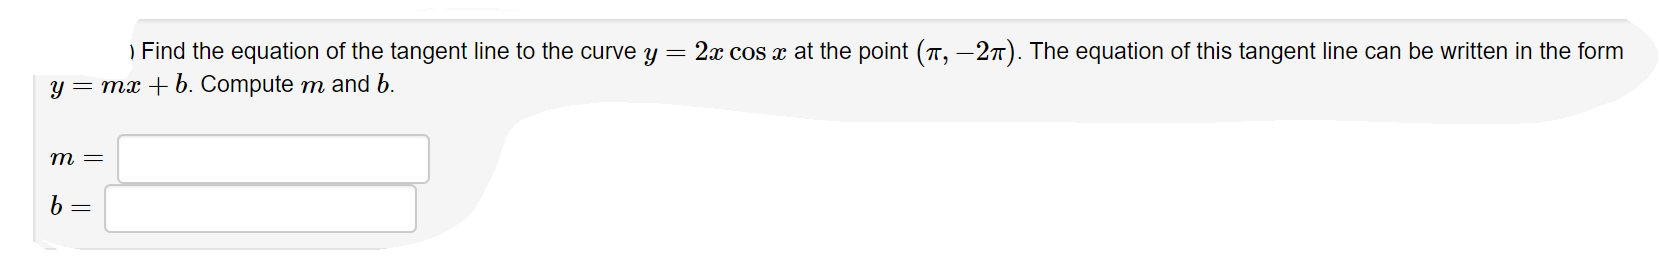 ) Find the equation of the tangent line to the curve y = 2x cos x at the point (π,-2π). The equation of this tangent line can be written in the form Compute m and